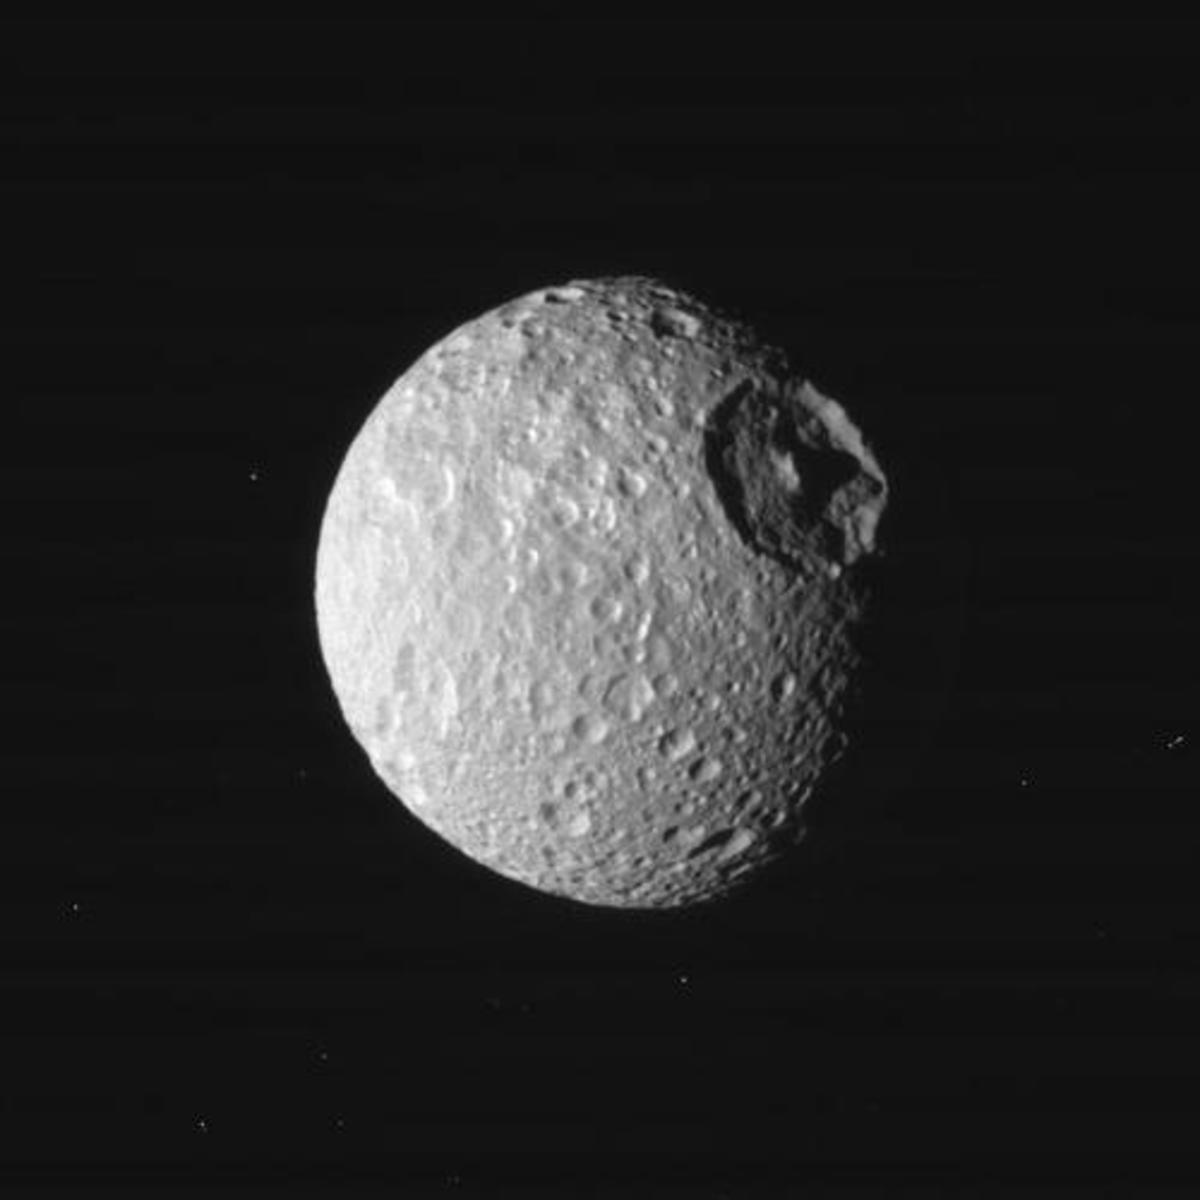 """That's no moon, it's a... oh, nevermind, it IS a moon."" NASA scientists tend to refer to Mimas as the ""Death Star moon"" thanks to the 80-mile-wide impact crater that just barely failed to shatter it. (The moon Mimas is about 245 miles in diameter.)"